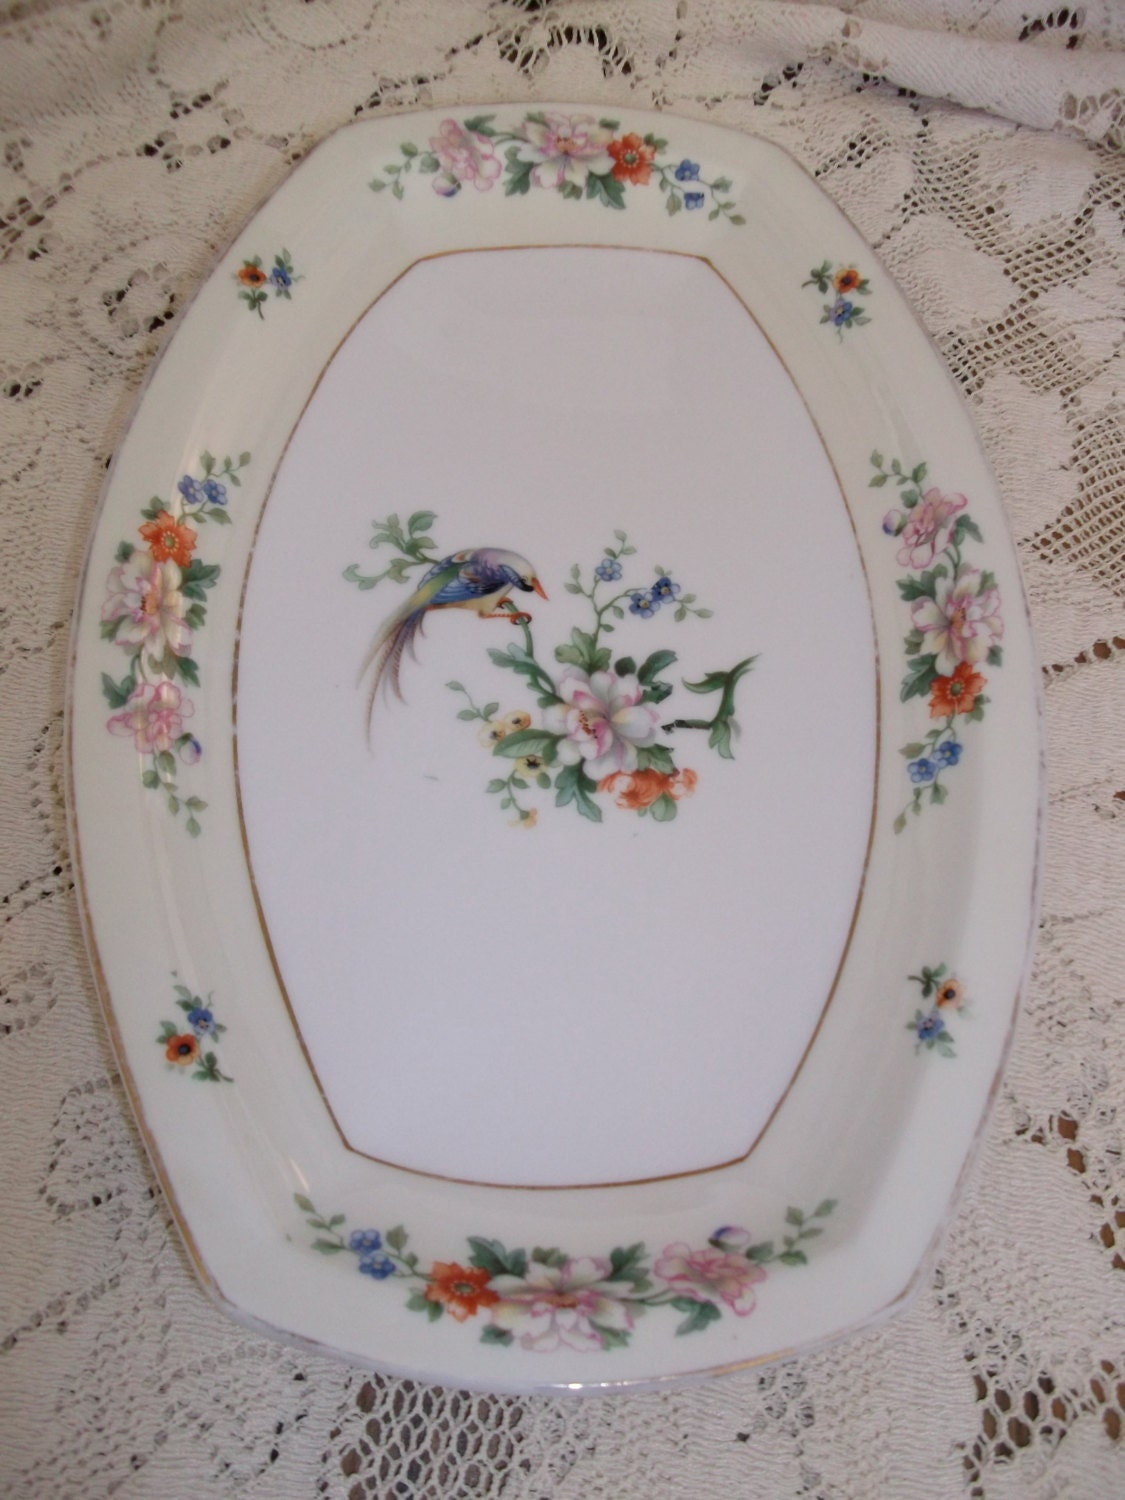 Heinrich Amp Co Selb Bavaria Songbird Platter Floral Sprays And